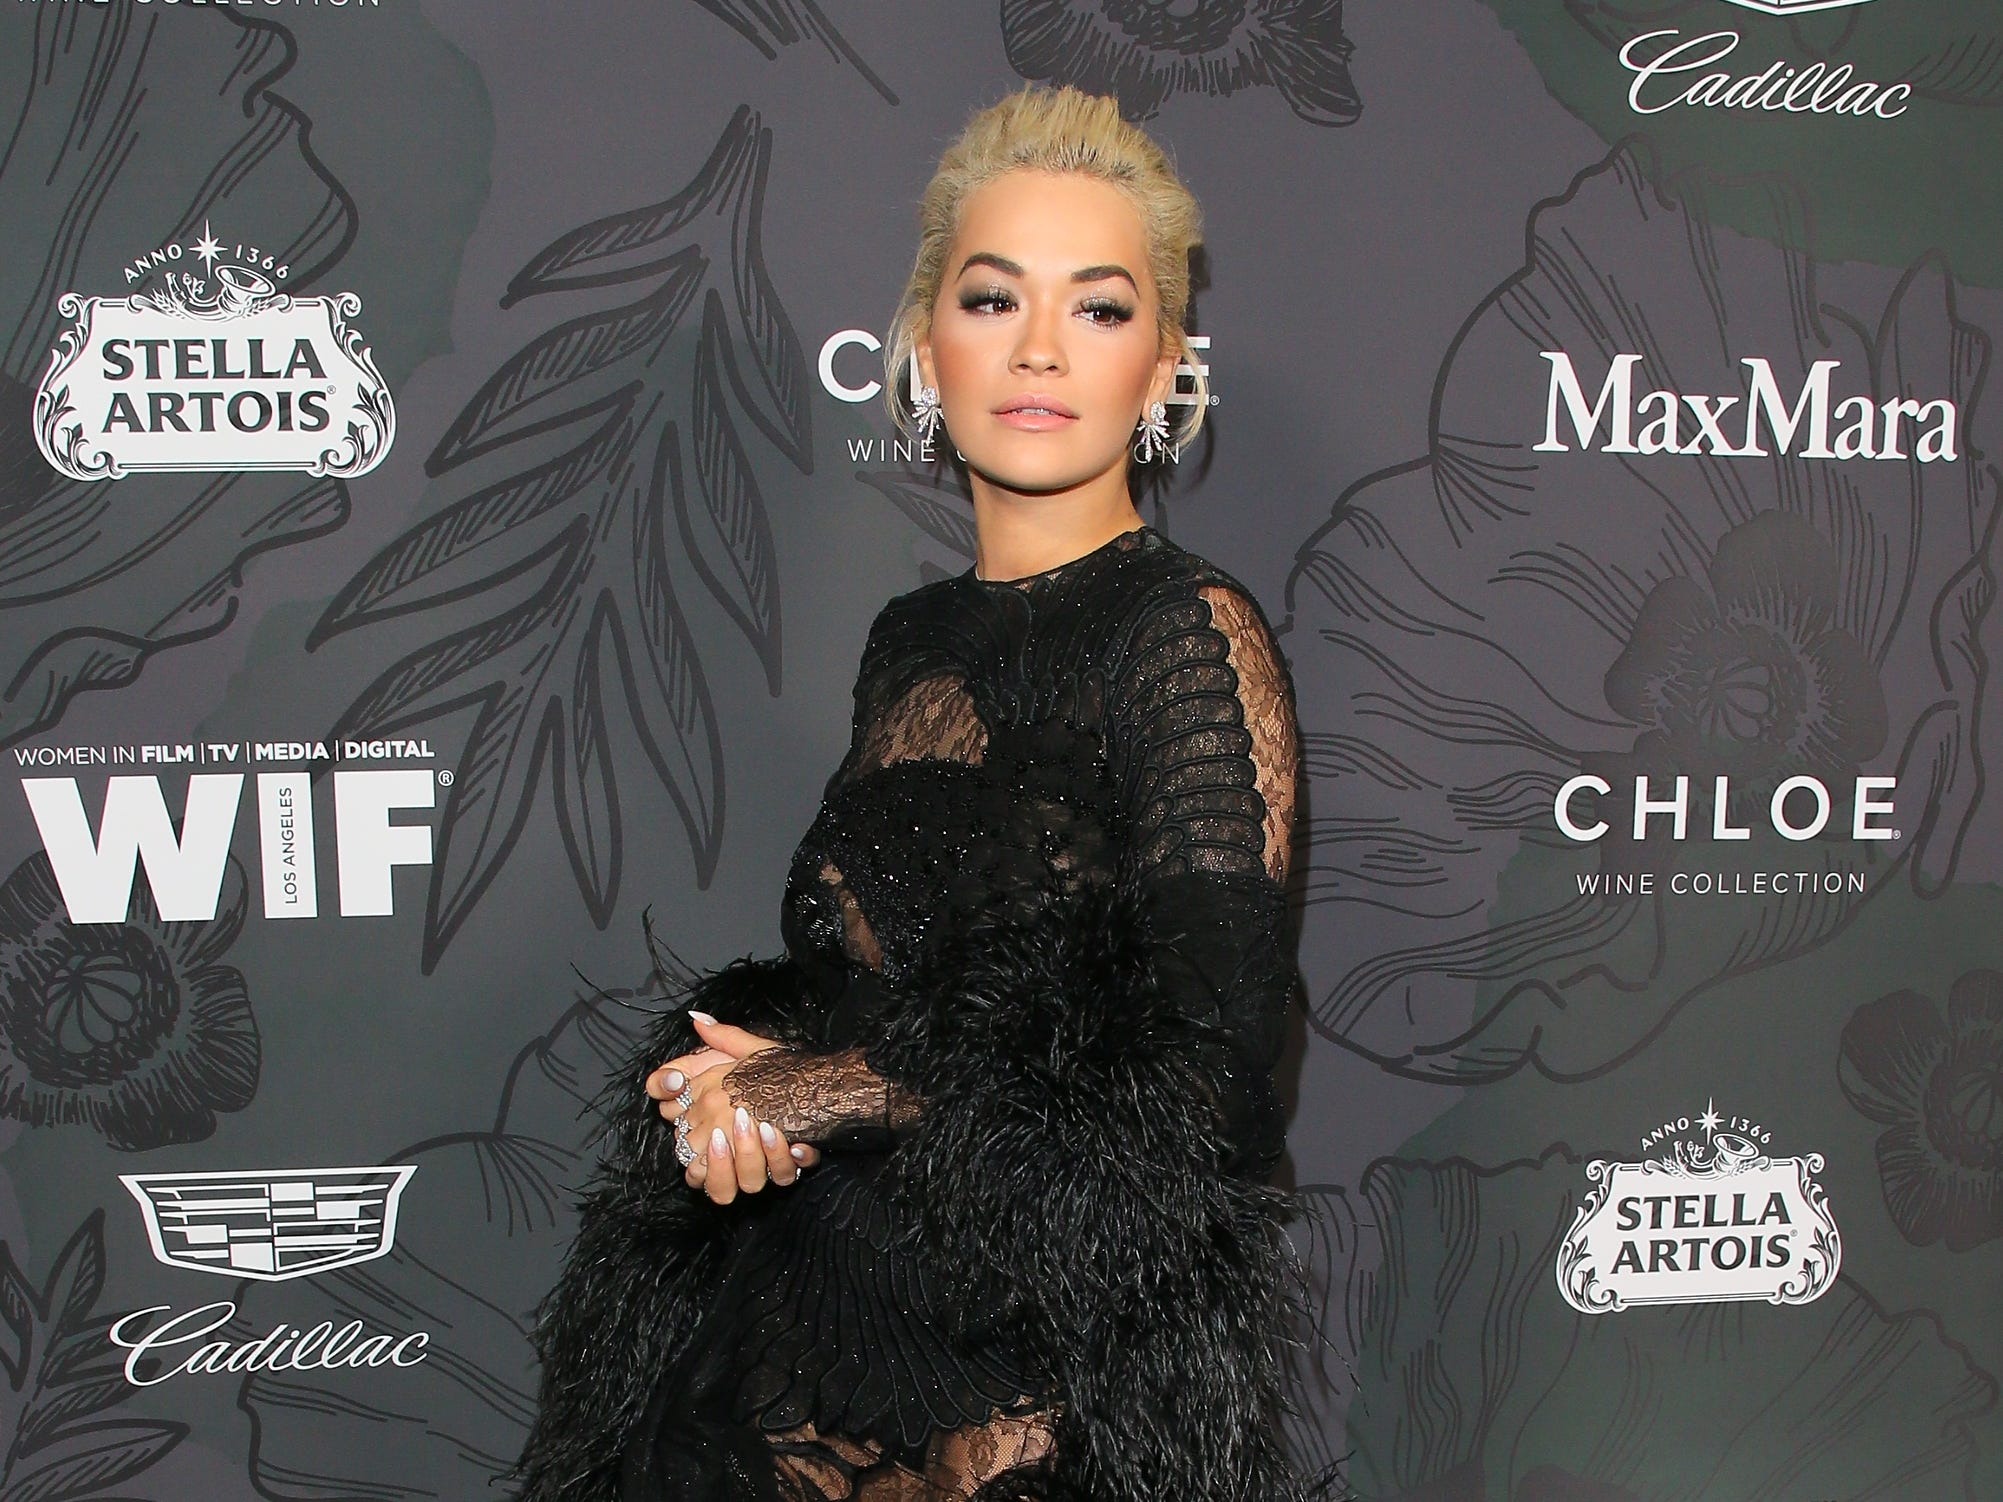 BEVERLY HILLS, CALIFORNIA - FEBRUARY 22: Rita Ora attends the 12th Annual Women In Film Oscar Party at Spring Place on February 22, 2019 in Beverly Hills, California. (Photo by JB Lacroix/WireImage) ORG XMIT: 775298179 ORIG FILE ID: 1126776005